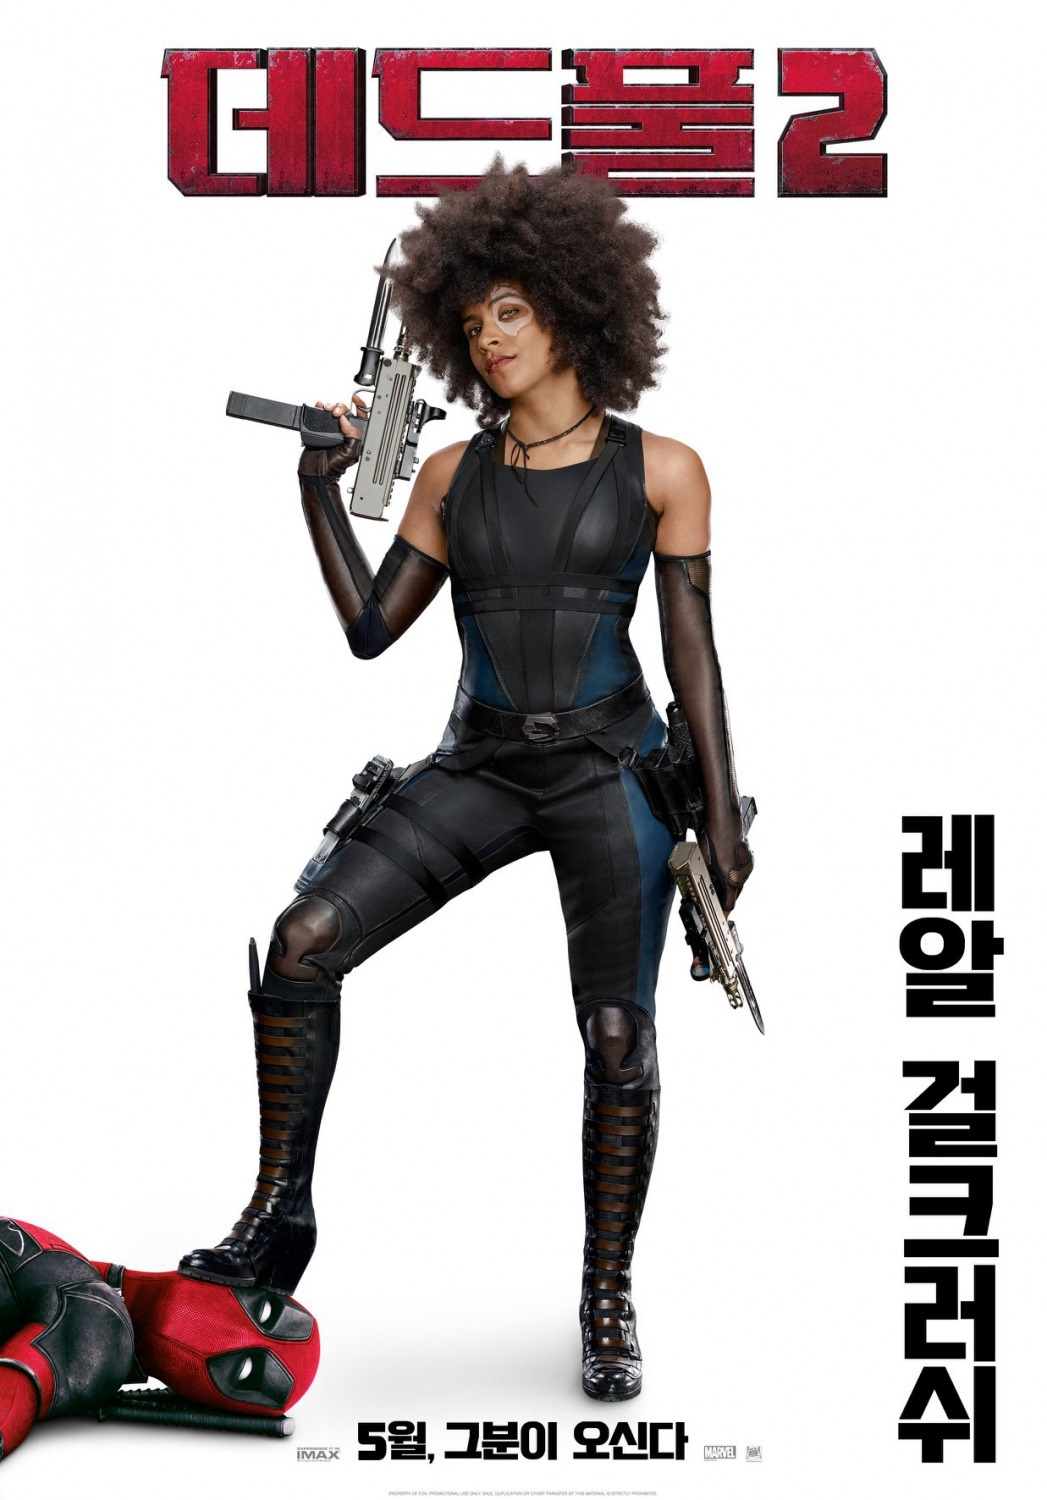 Korean poster for Deadpool 2 featuring the Merc and Domino